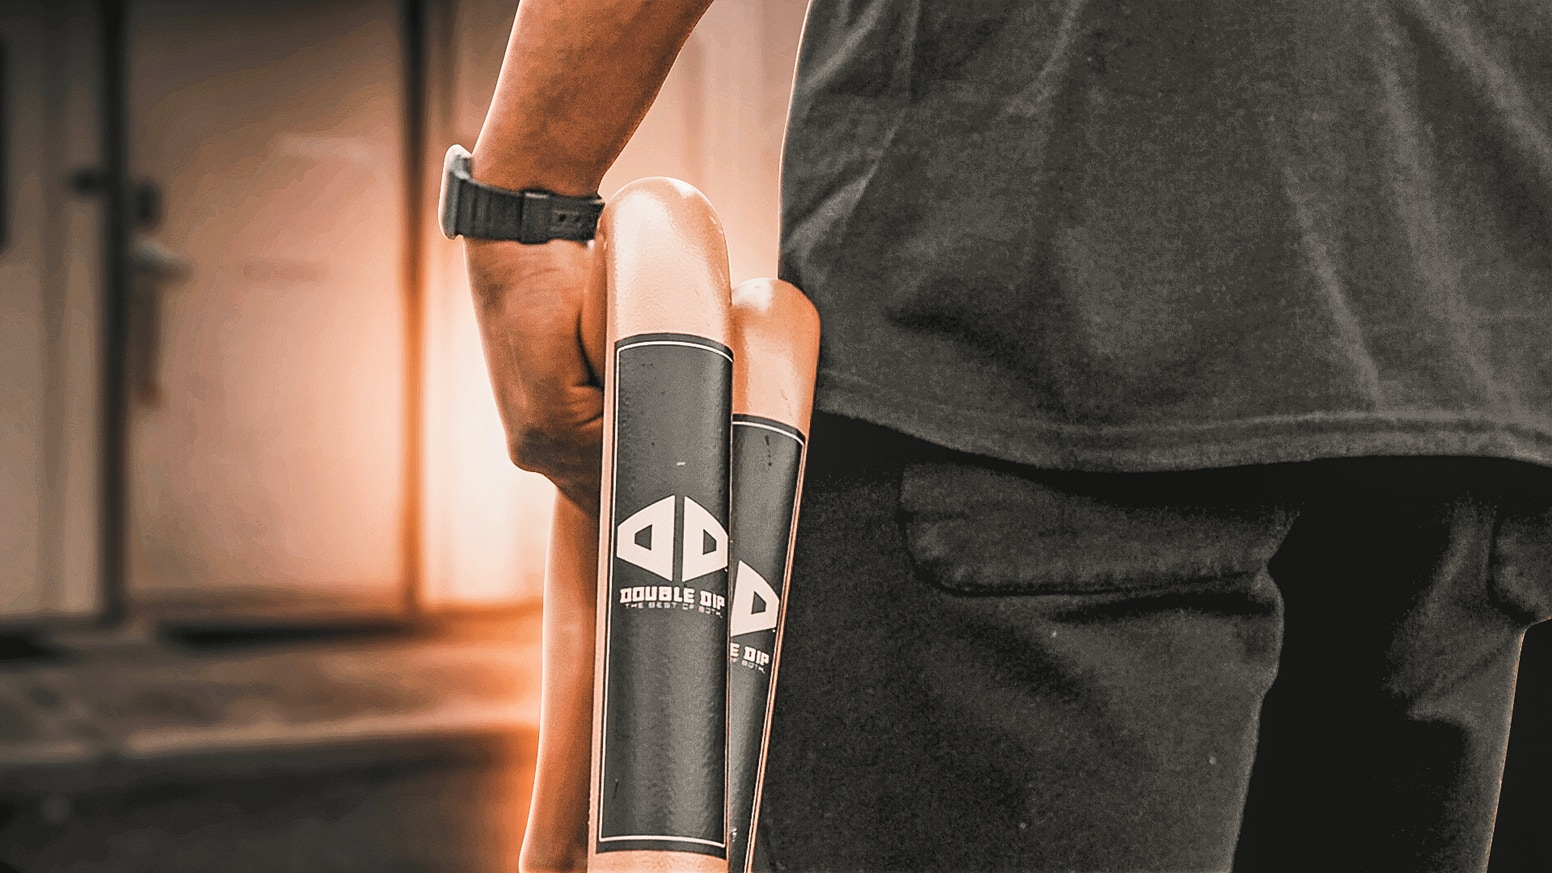 The transformational new product extending the possibilities of your bodyweight.